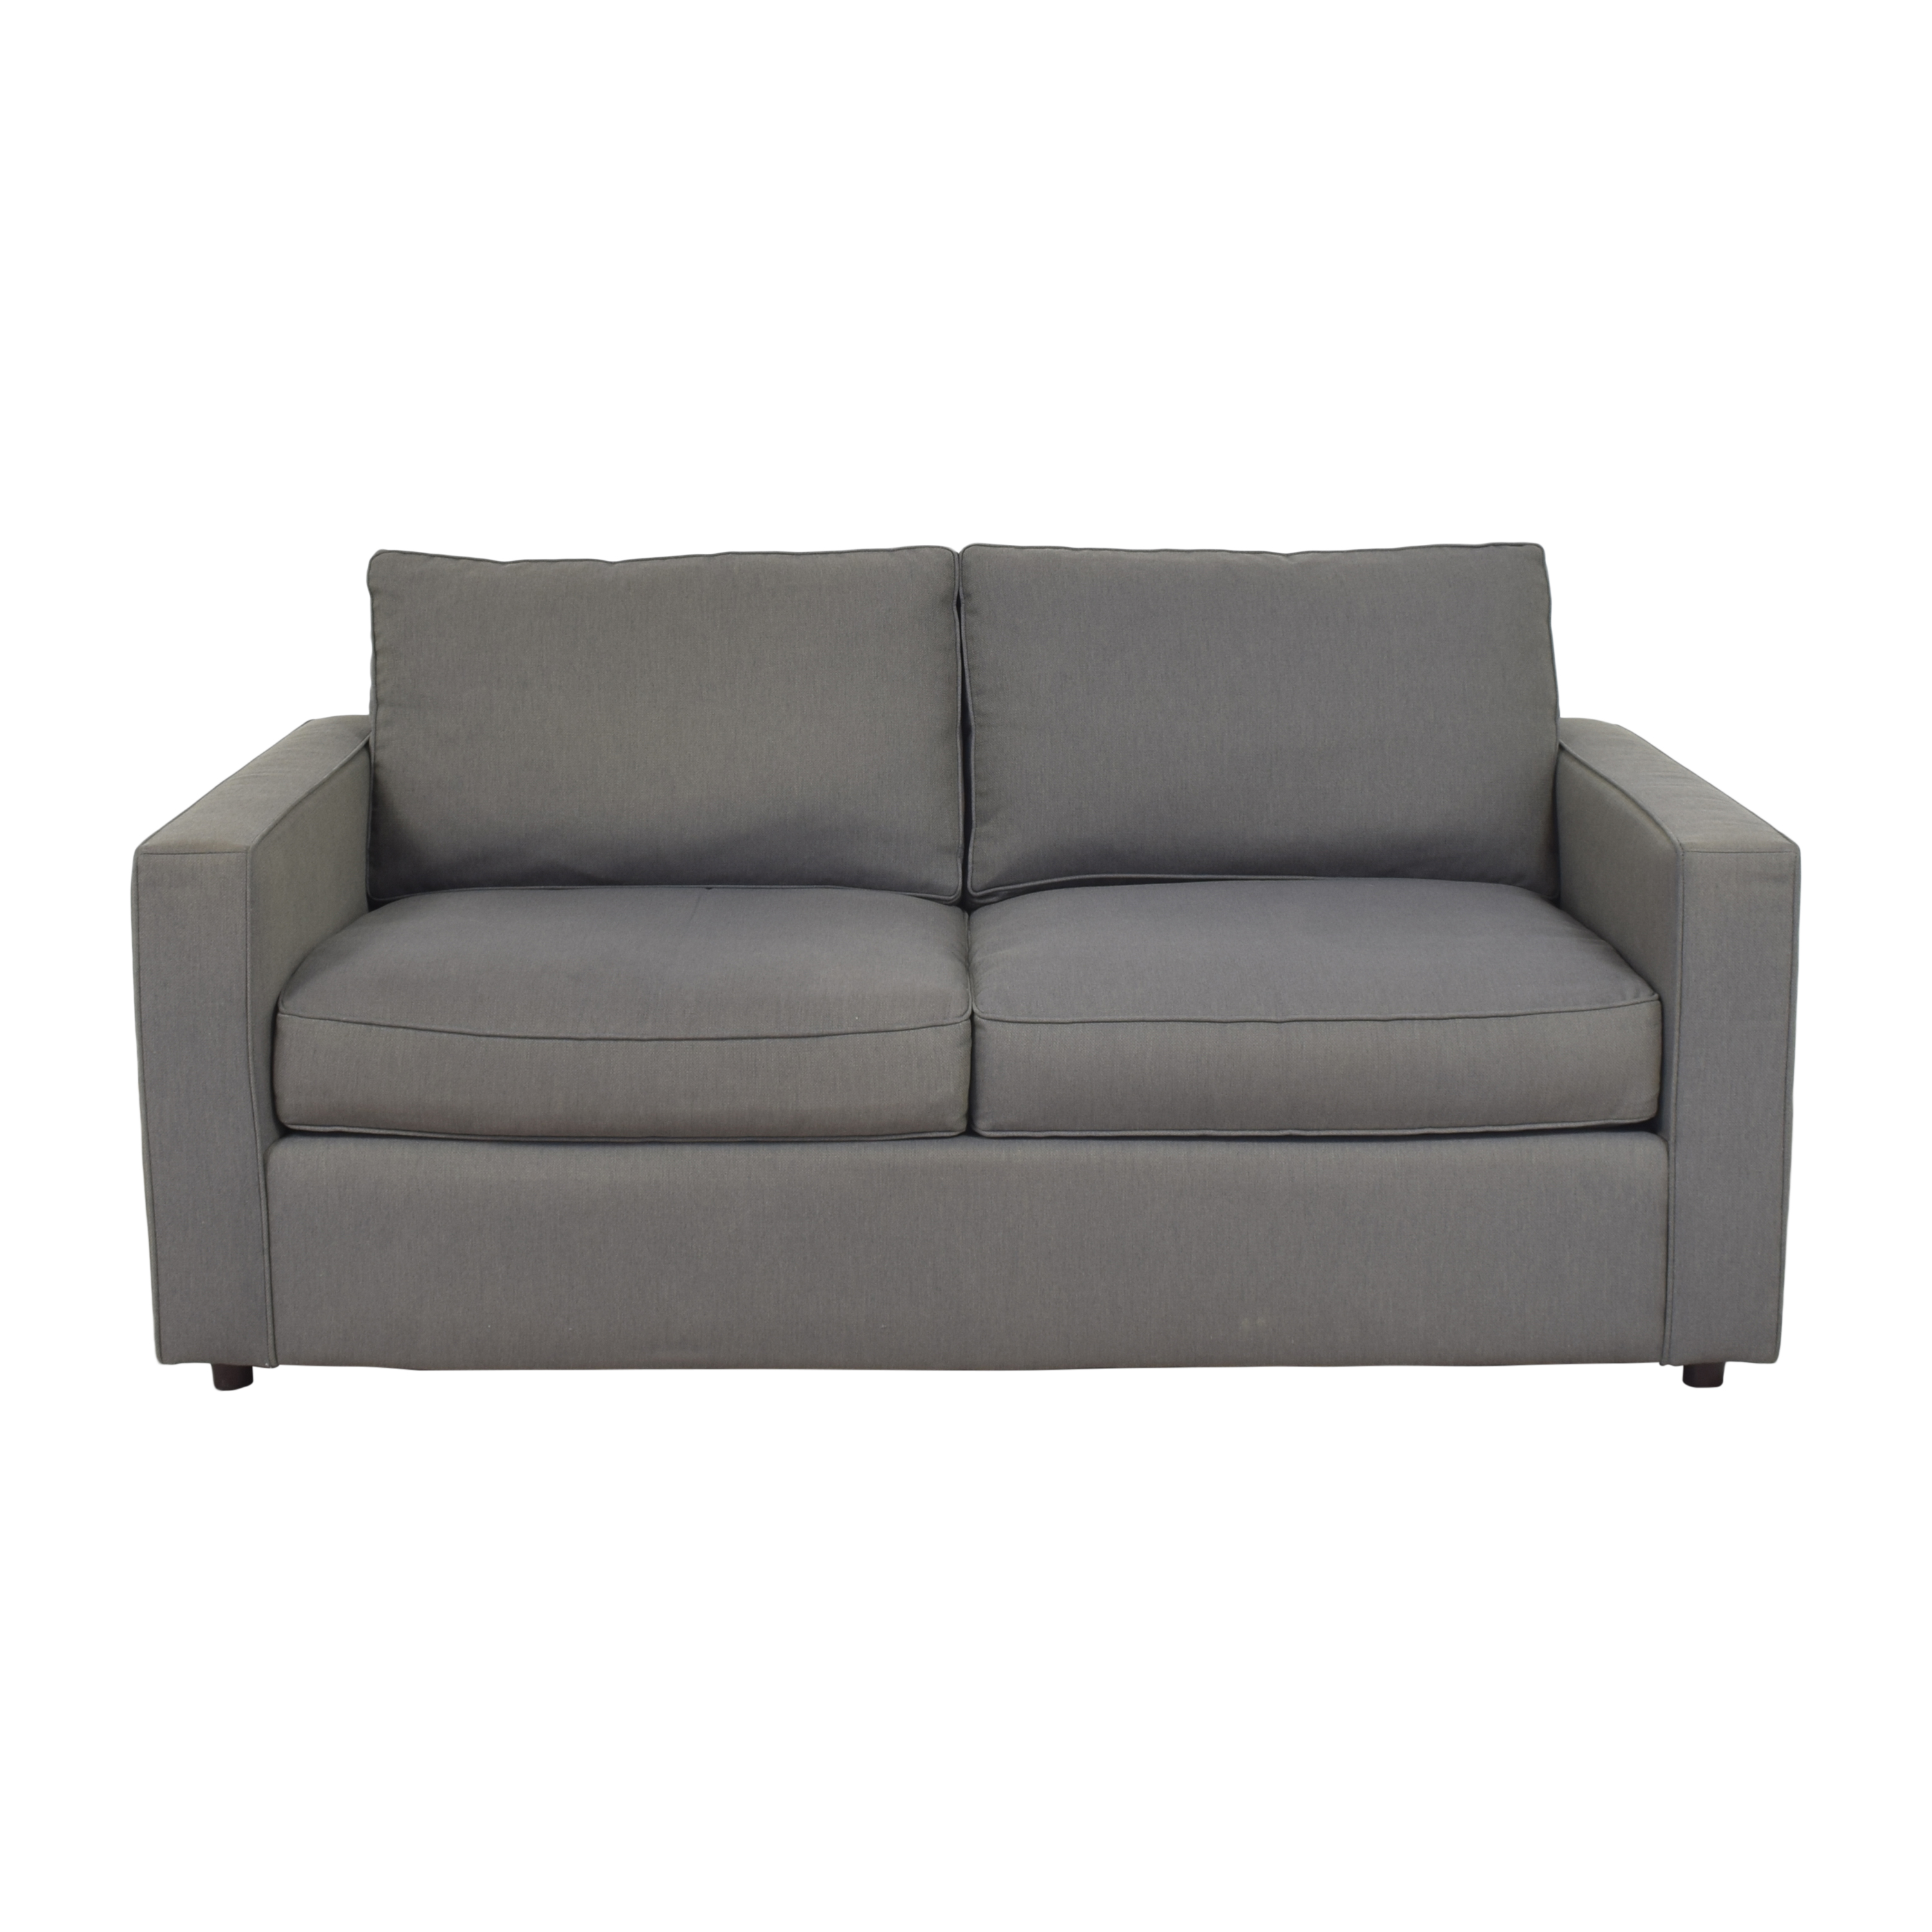 Room & Board Room & Board York Two Cushion Sofa grey